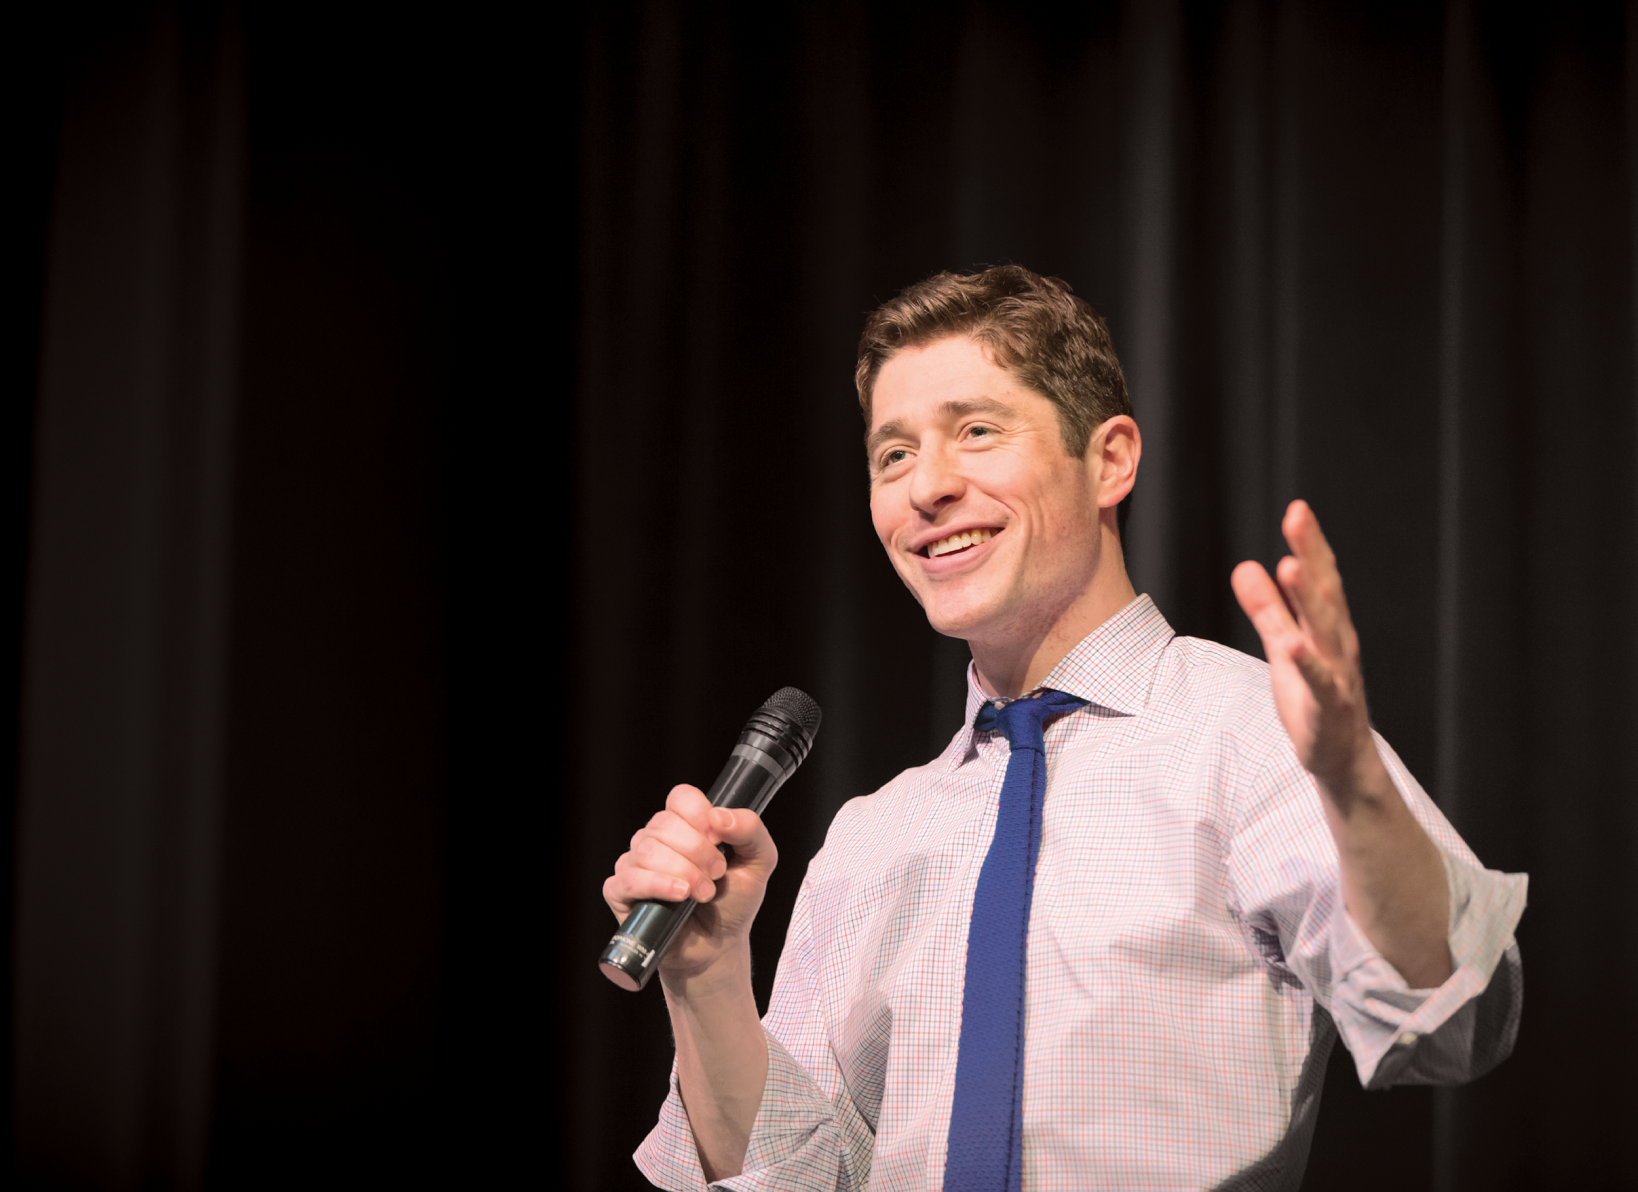 Ward 3 City Council Member Jacob Frey won the mayoral race after five rounds of vote tabulation, according to unofficial results from the city. File photo